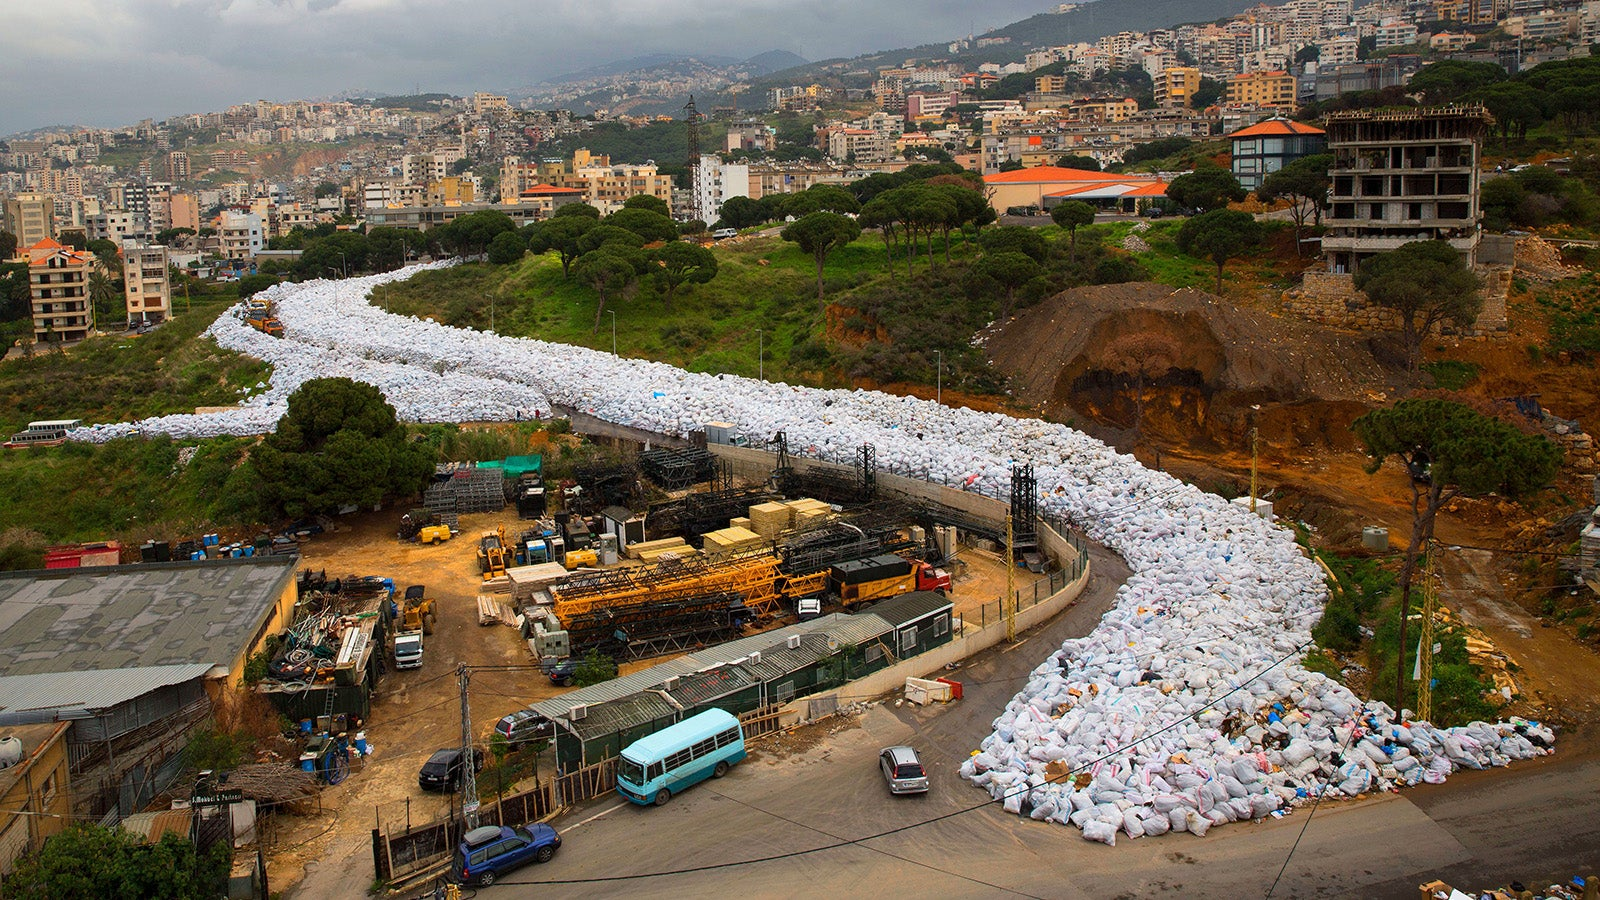 This Street in Beirut Is Completely Made of Trash Bags